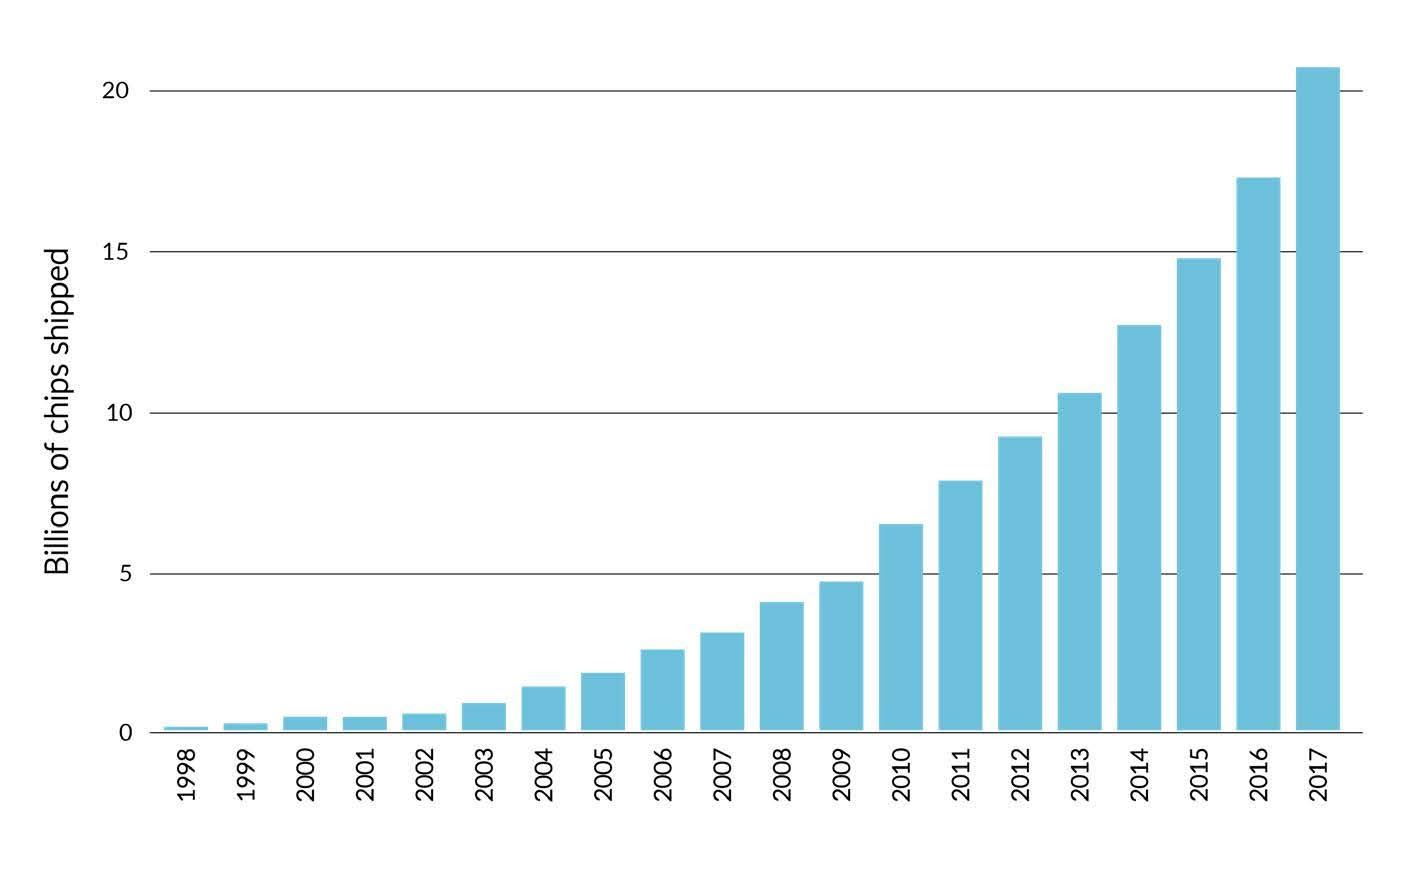 Figure 1: Number of Arm-based chips shipped in the last 20 years.